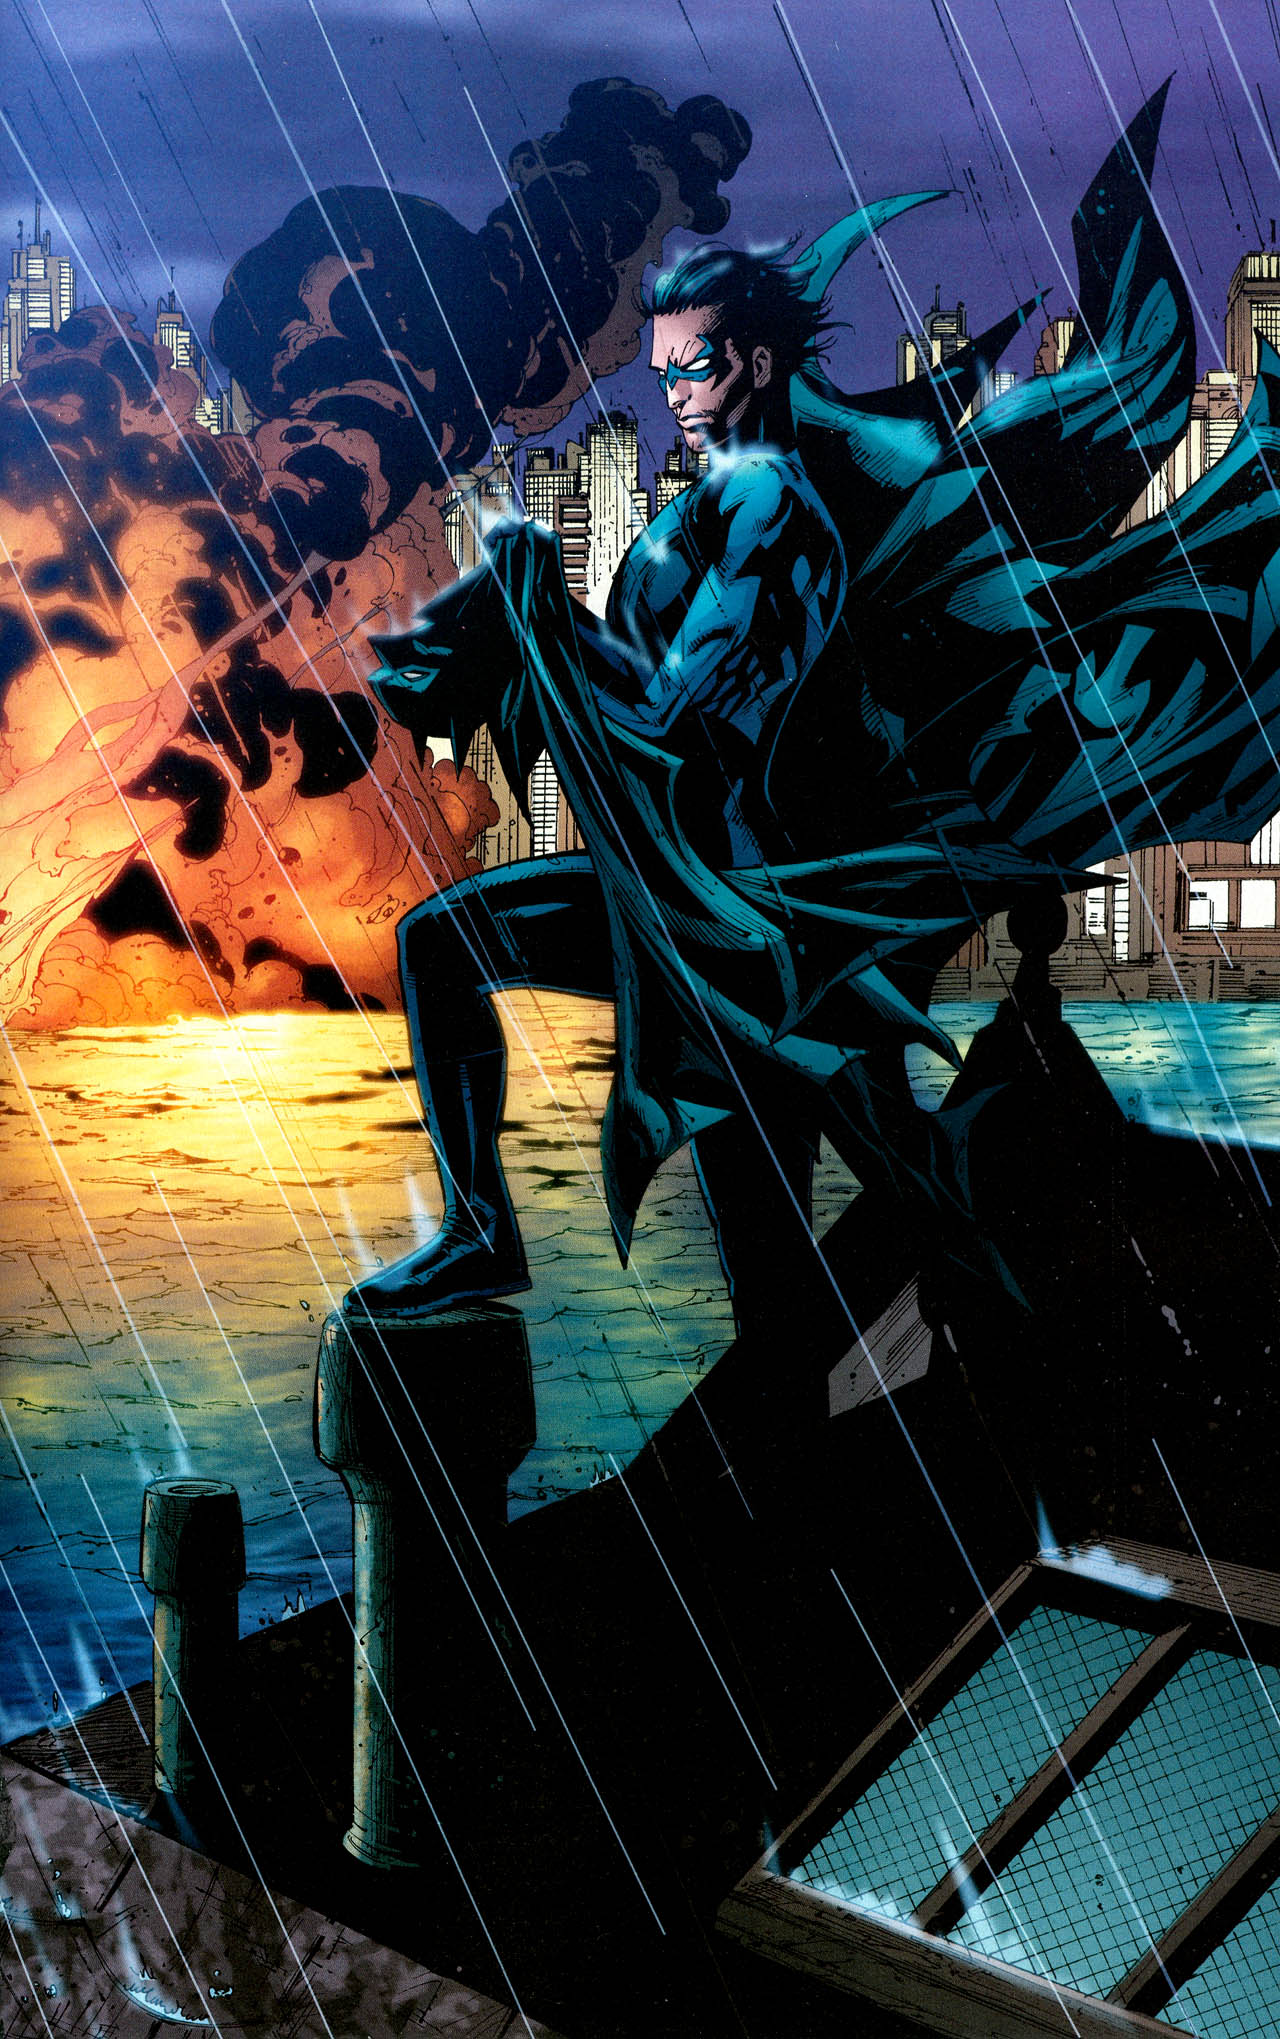 Nightwing Holding The Cape And Cowl